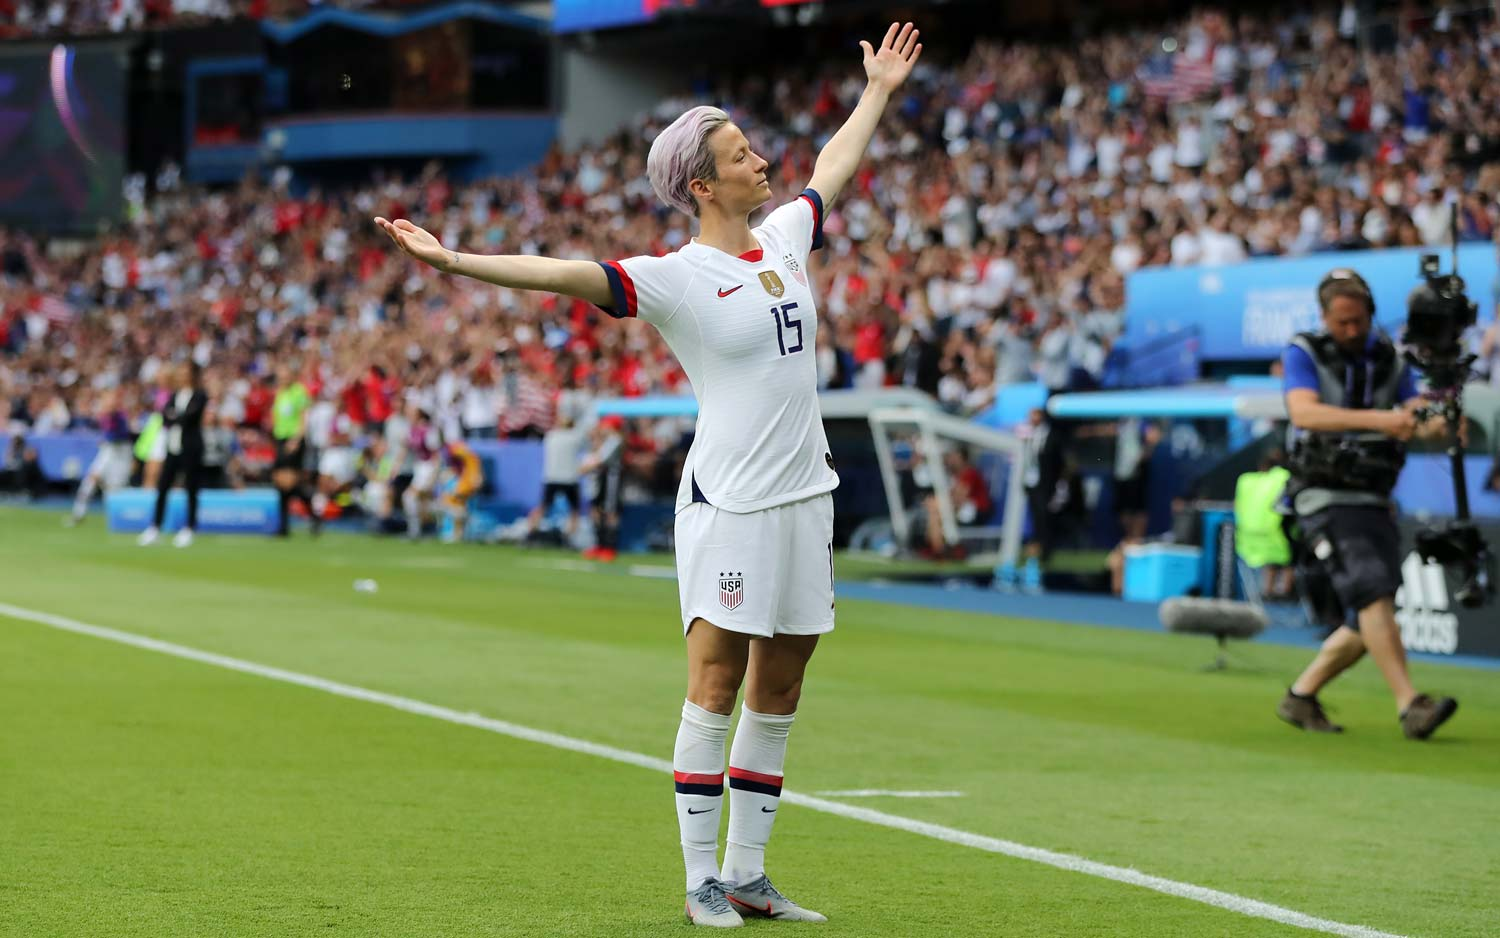 How to Watch USA vs England: Live Stream 2019 Women's World Cup